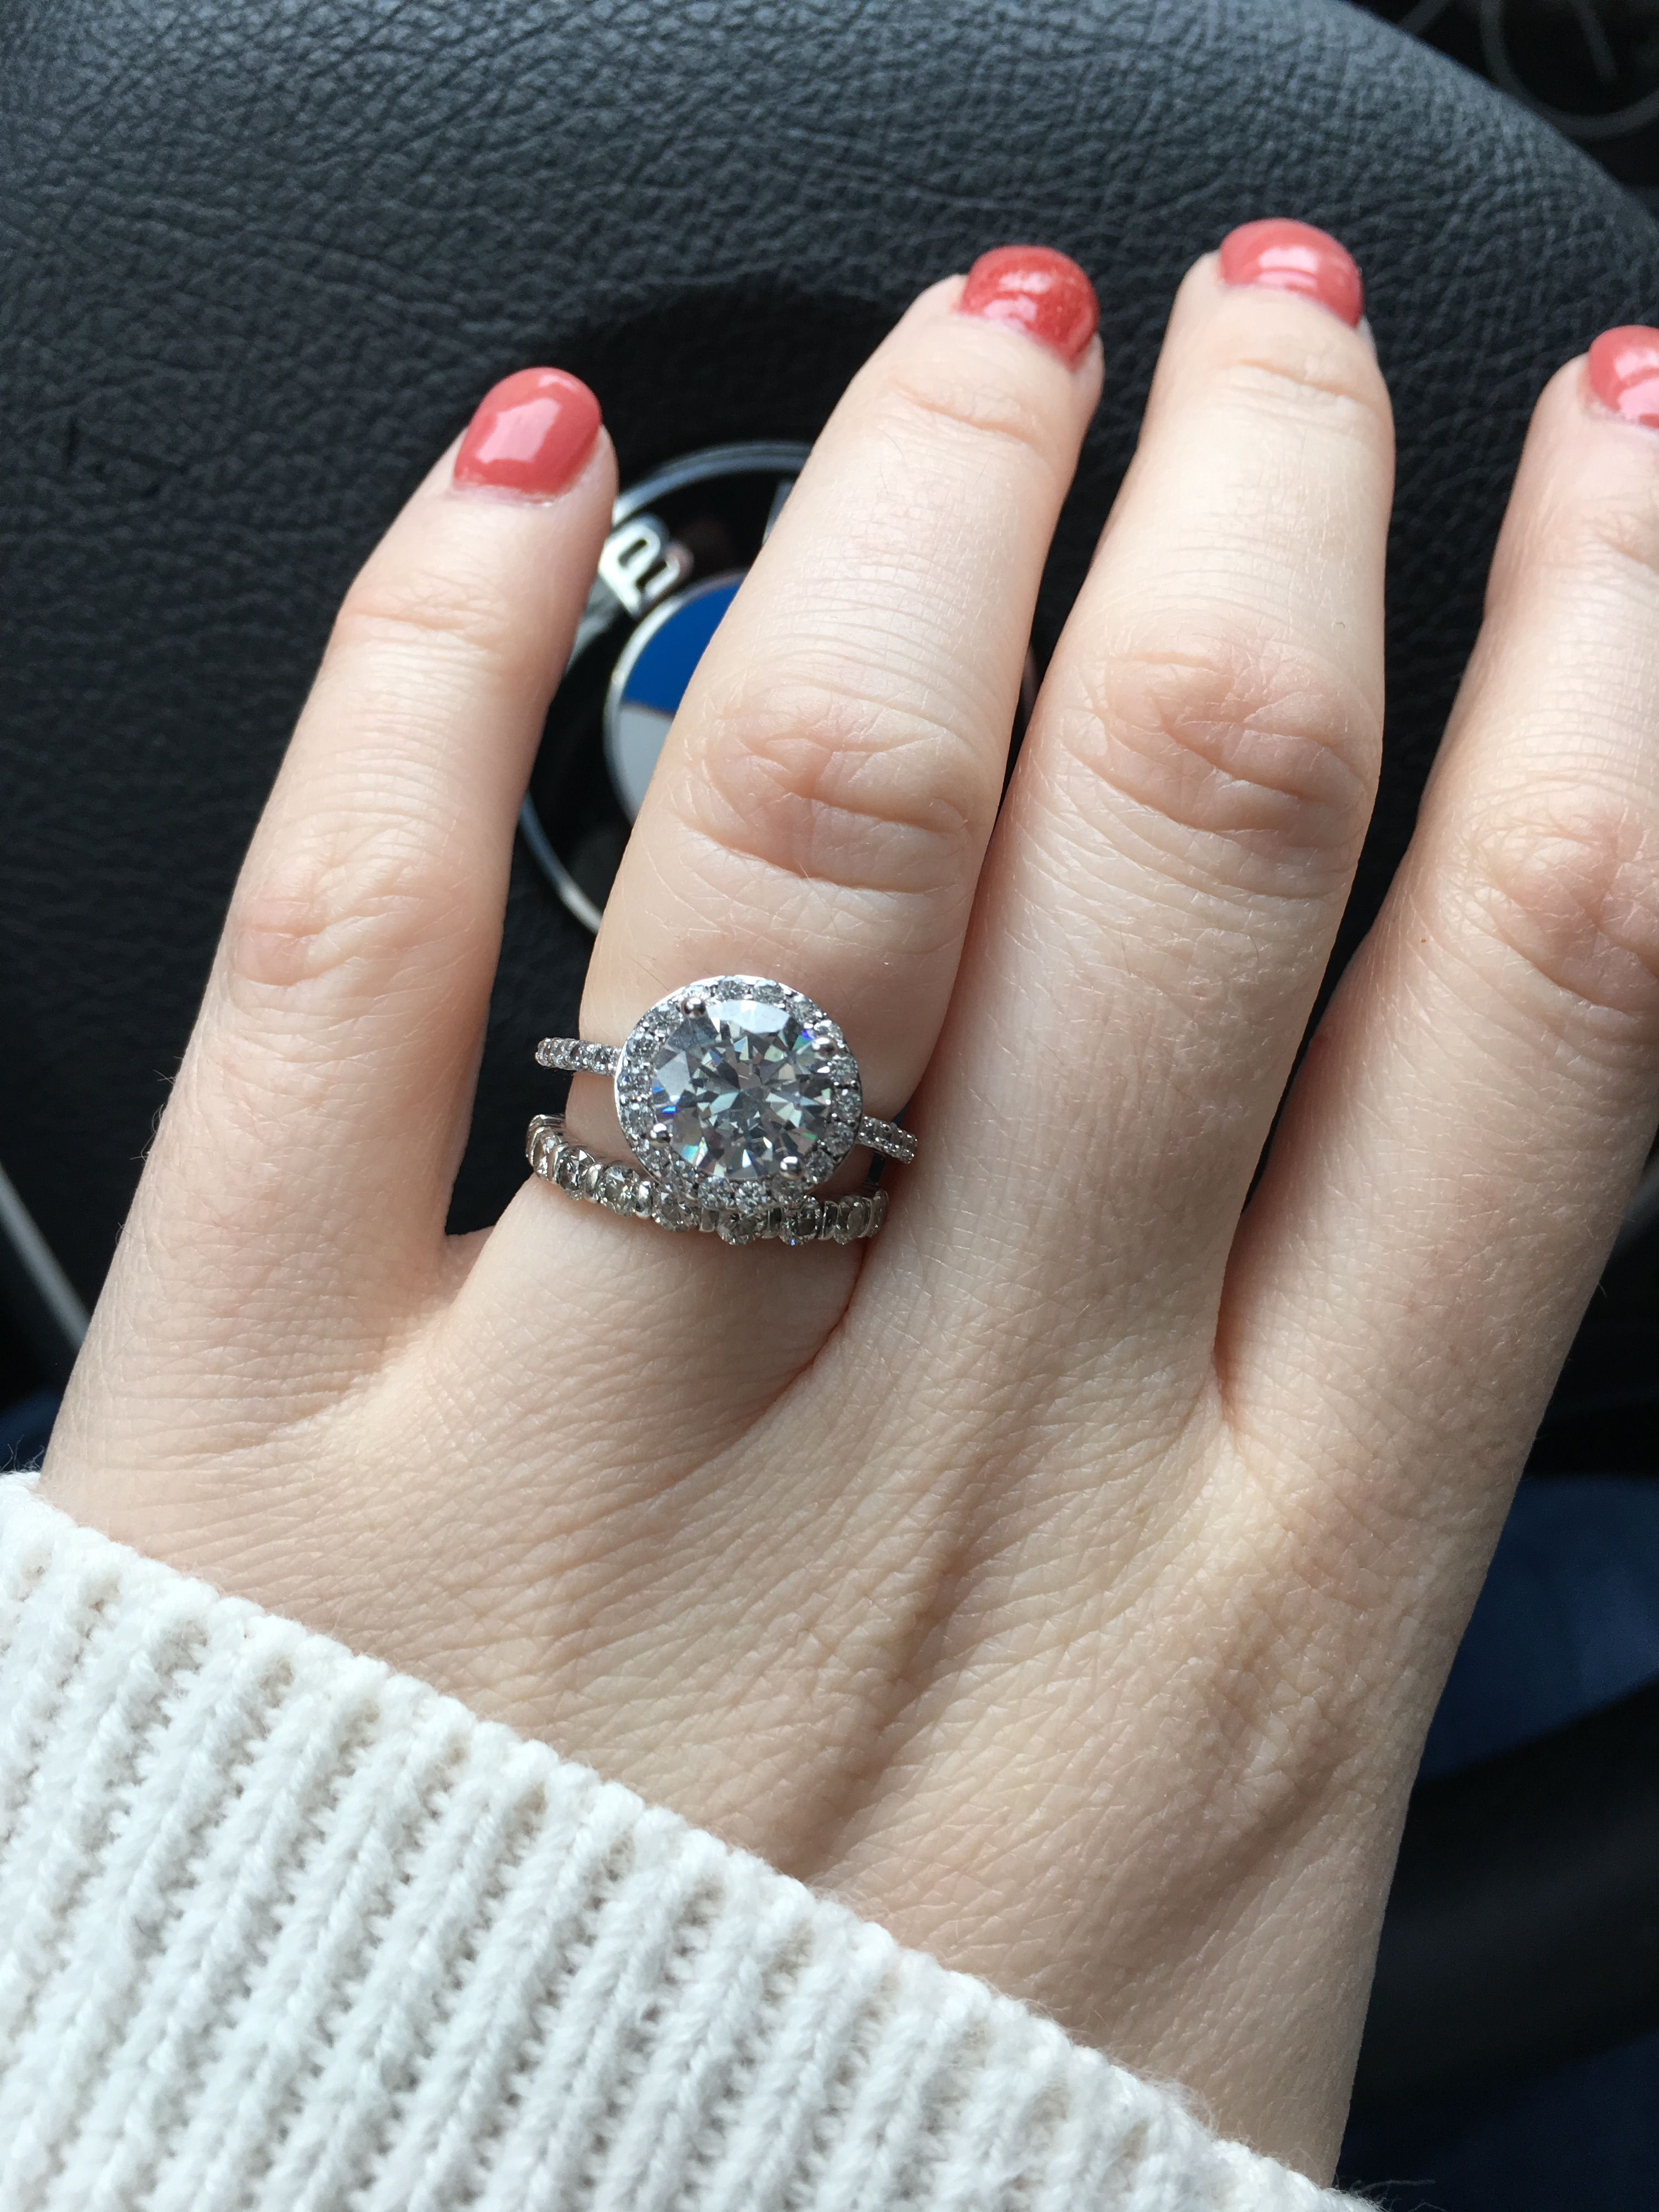 Pin by Julia Brantley on jewelry | Engagement rings ...